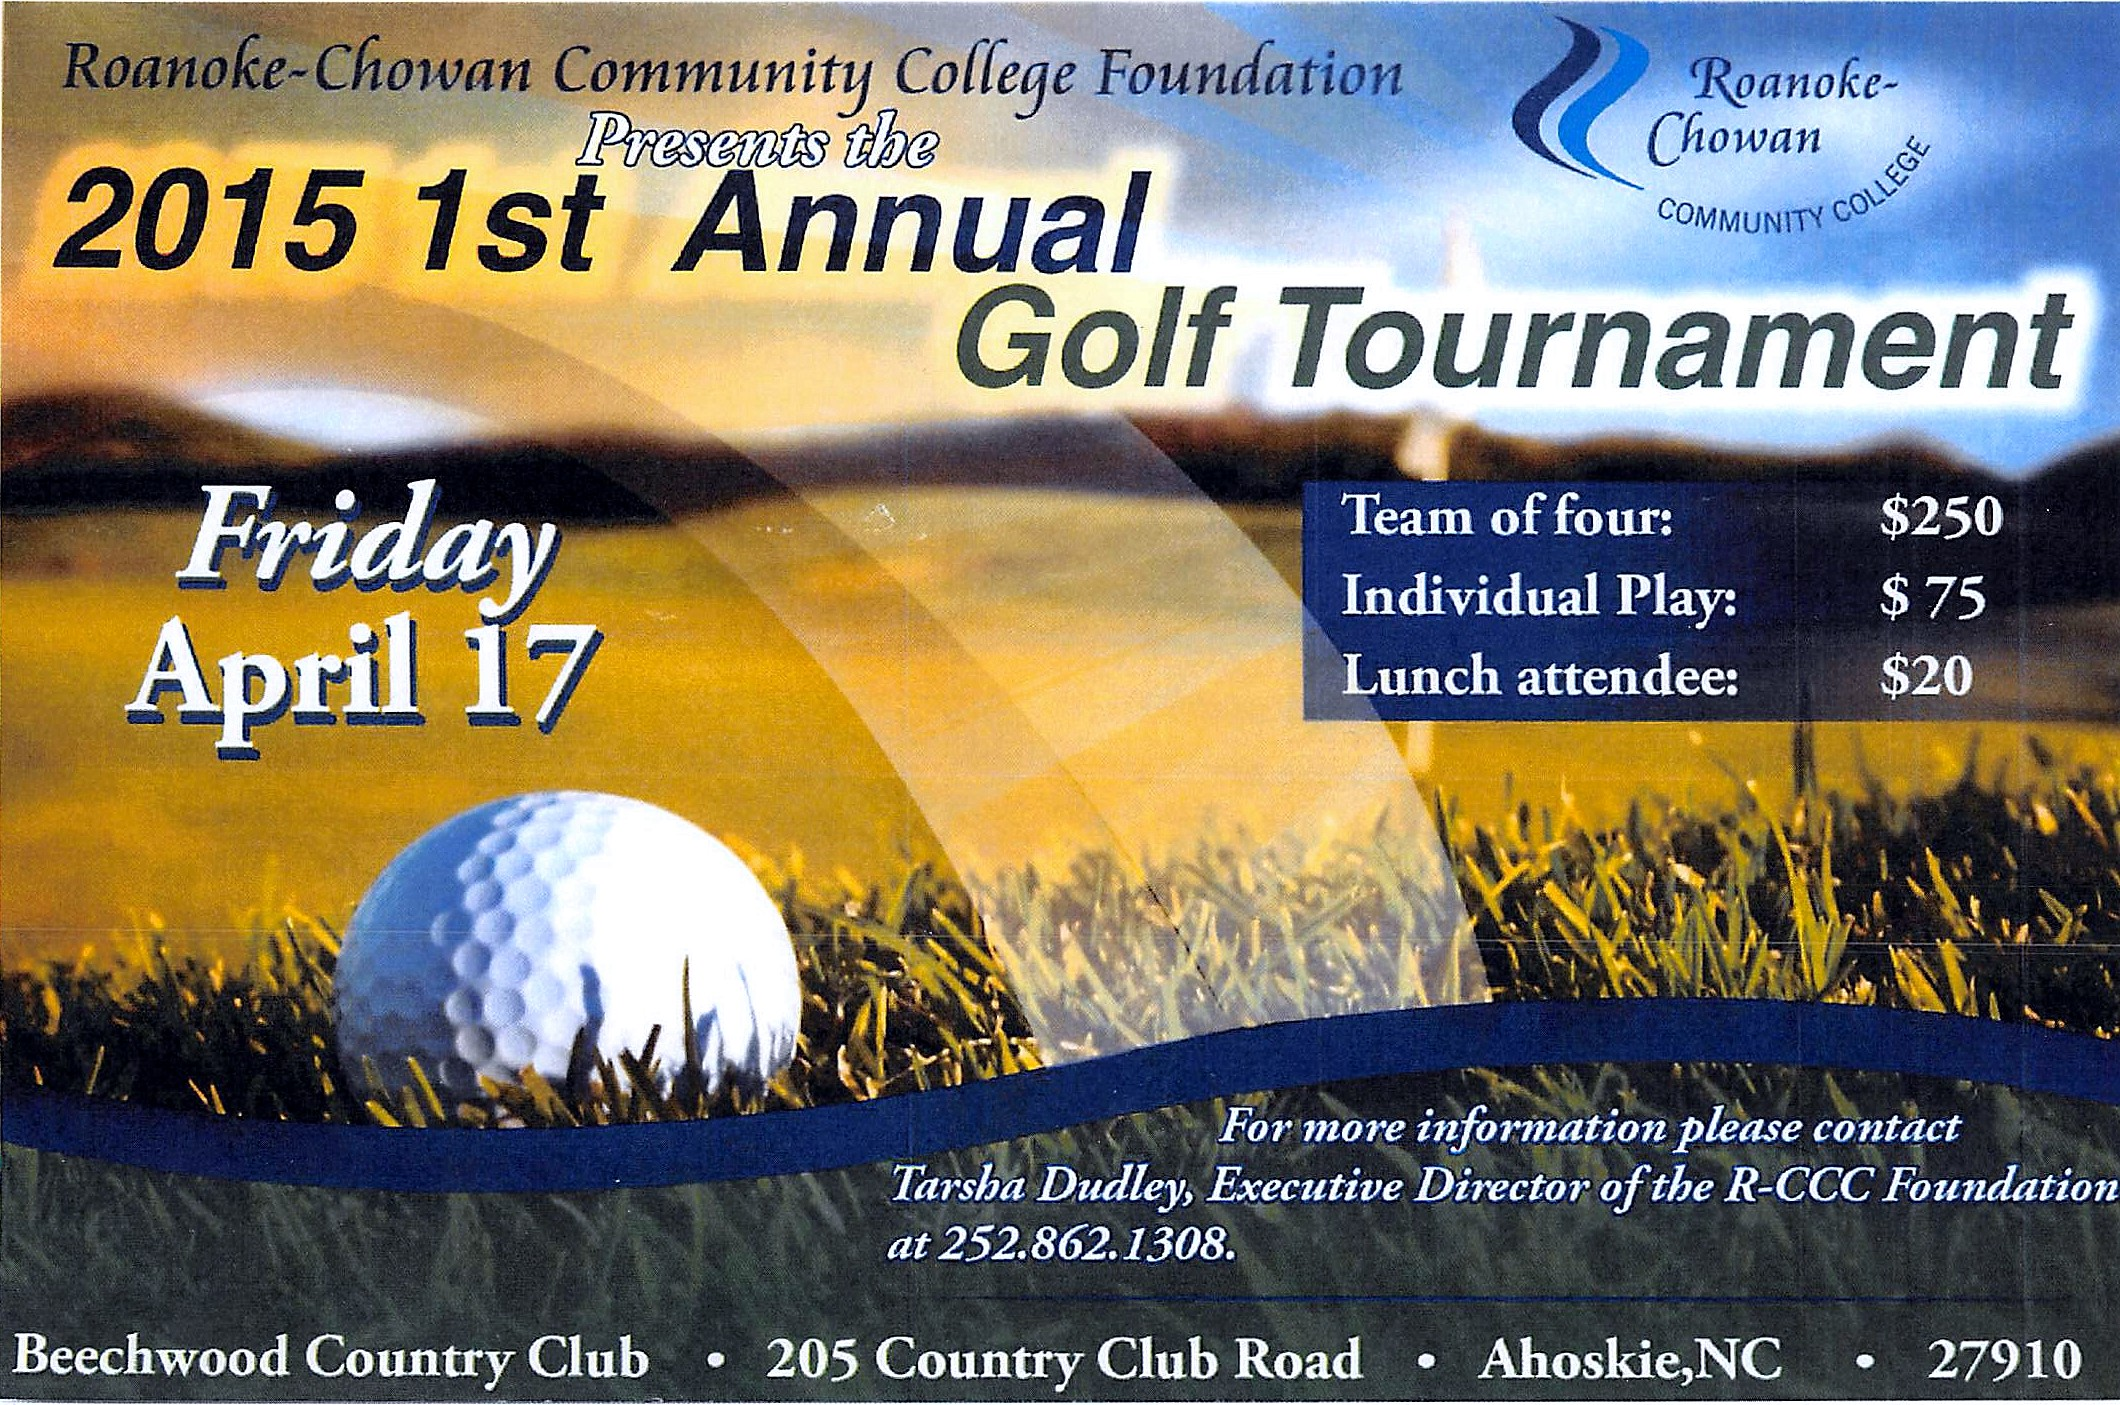 RCCC Foundation 1st Annual Golf Tournament - April 17th!